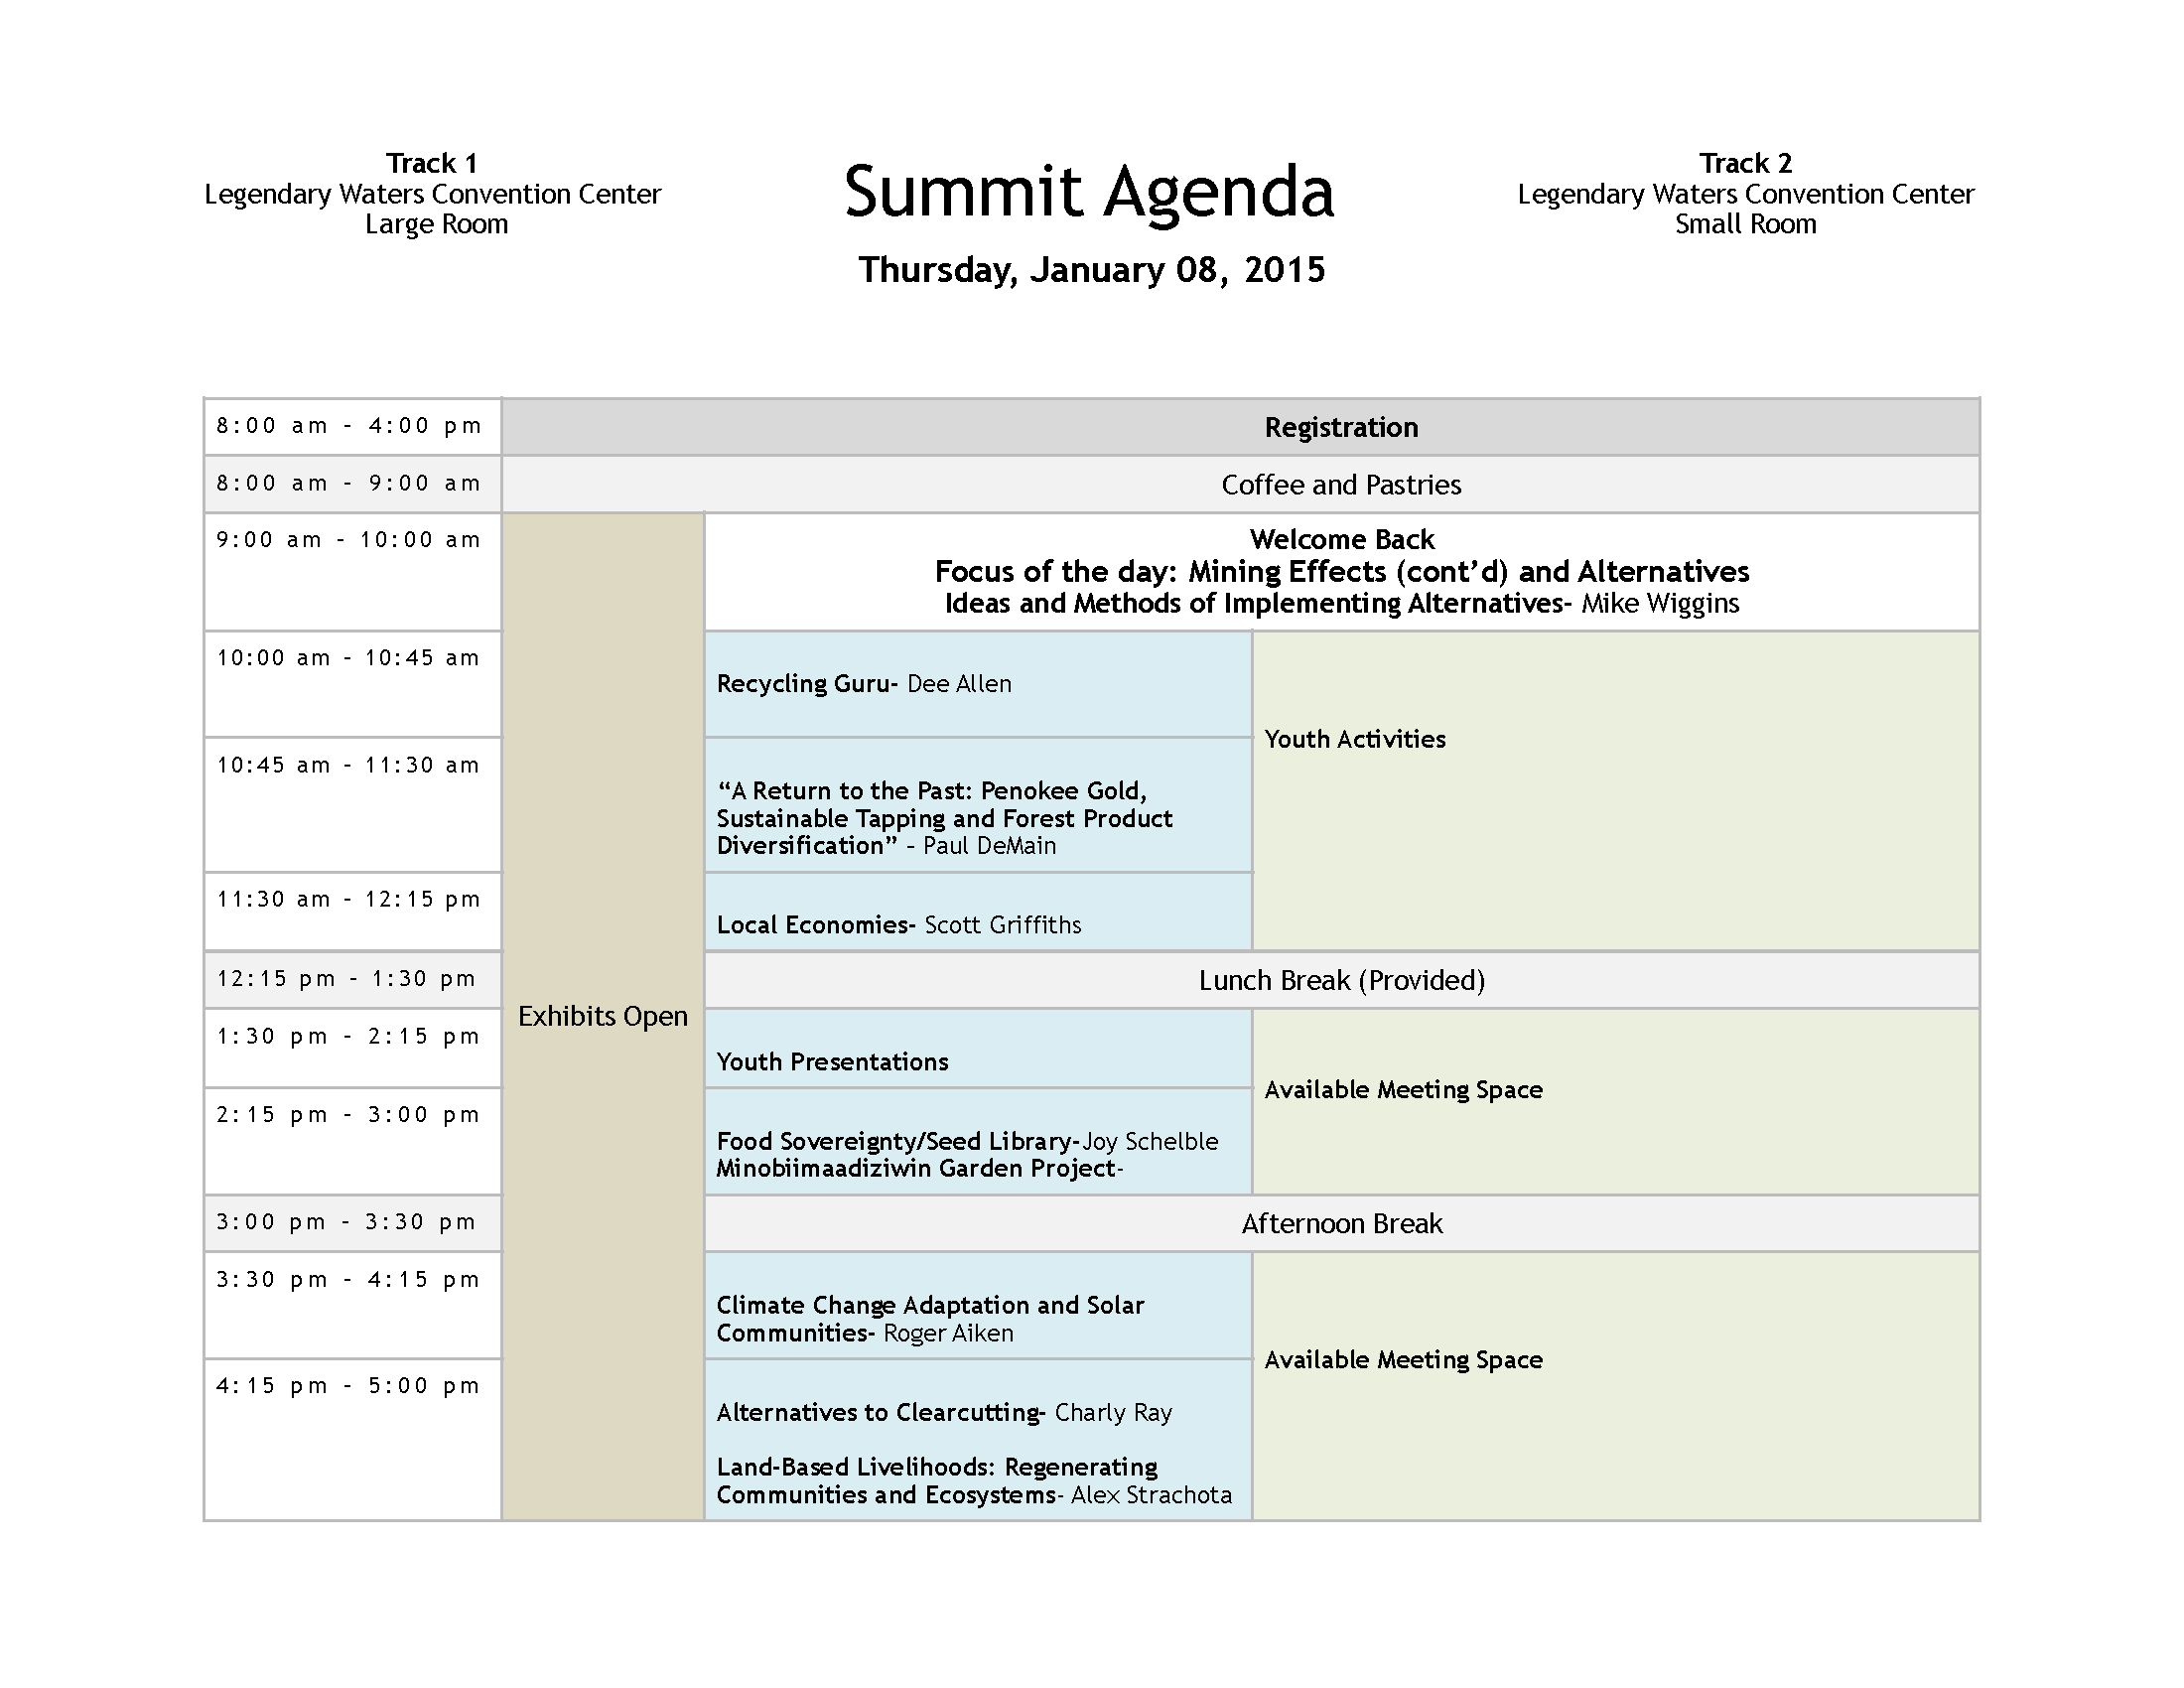 Summit Agenda Final_Page_3.png